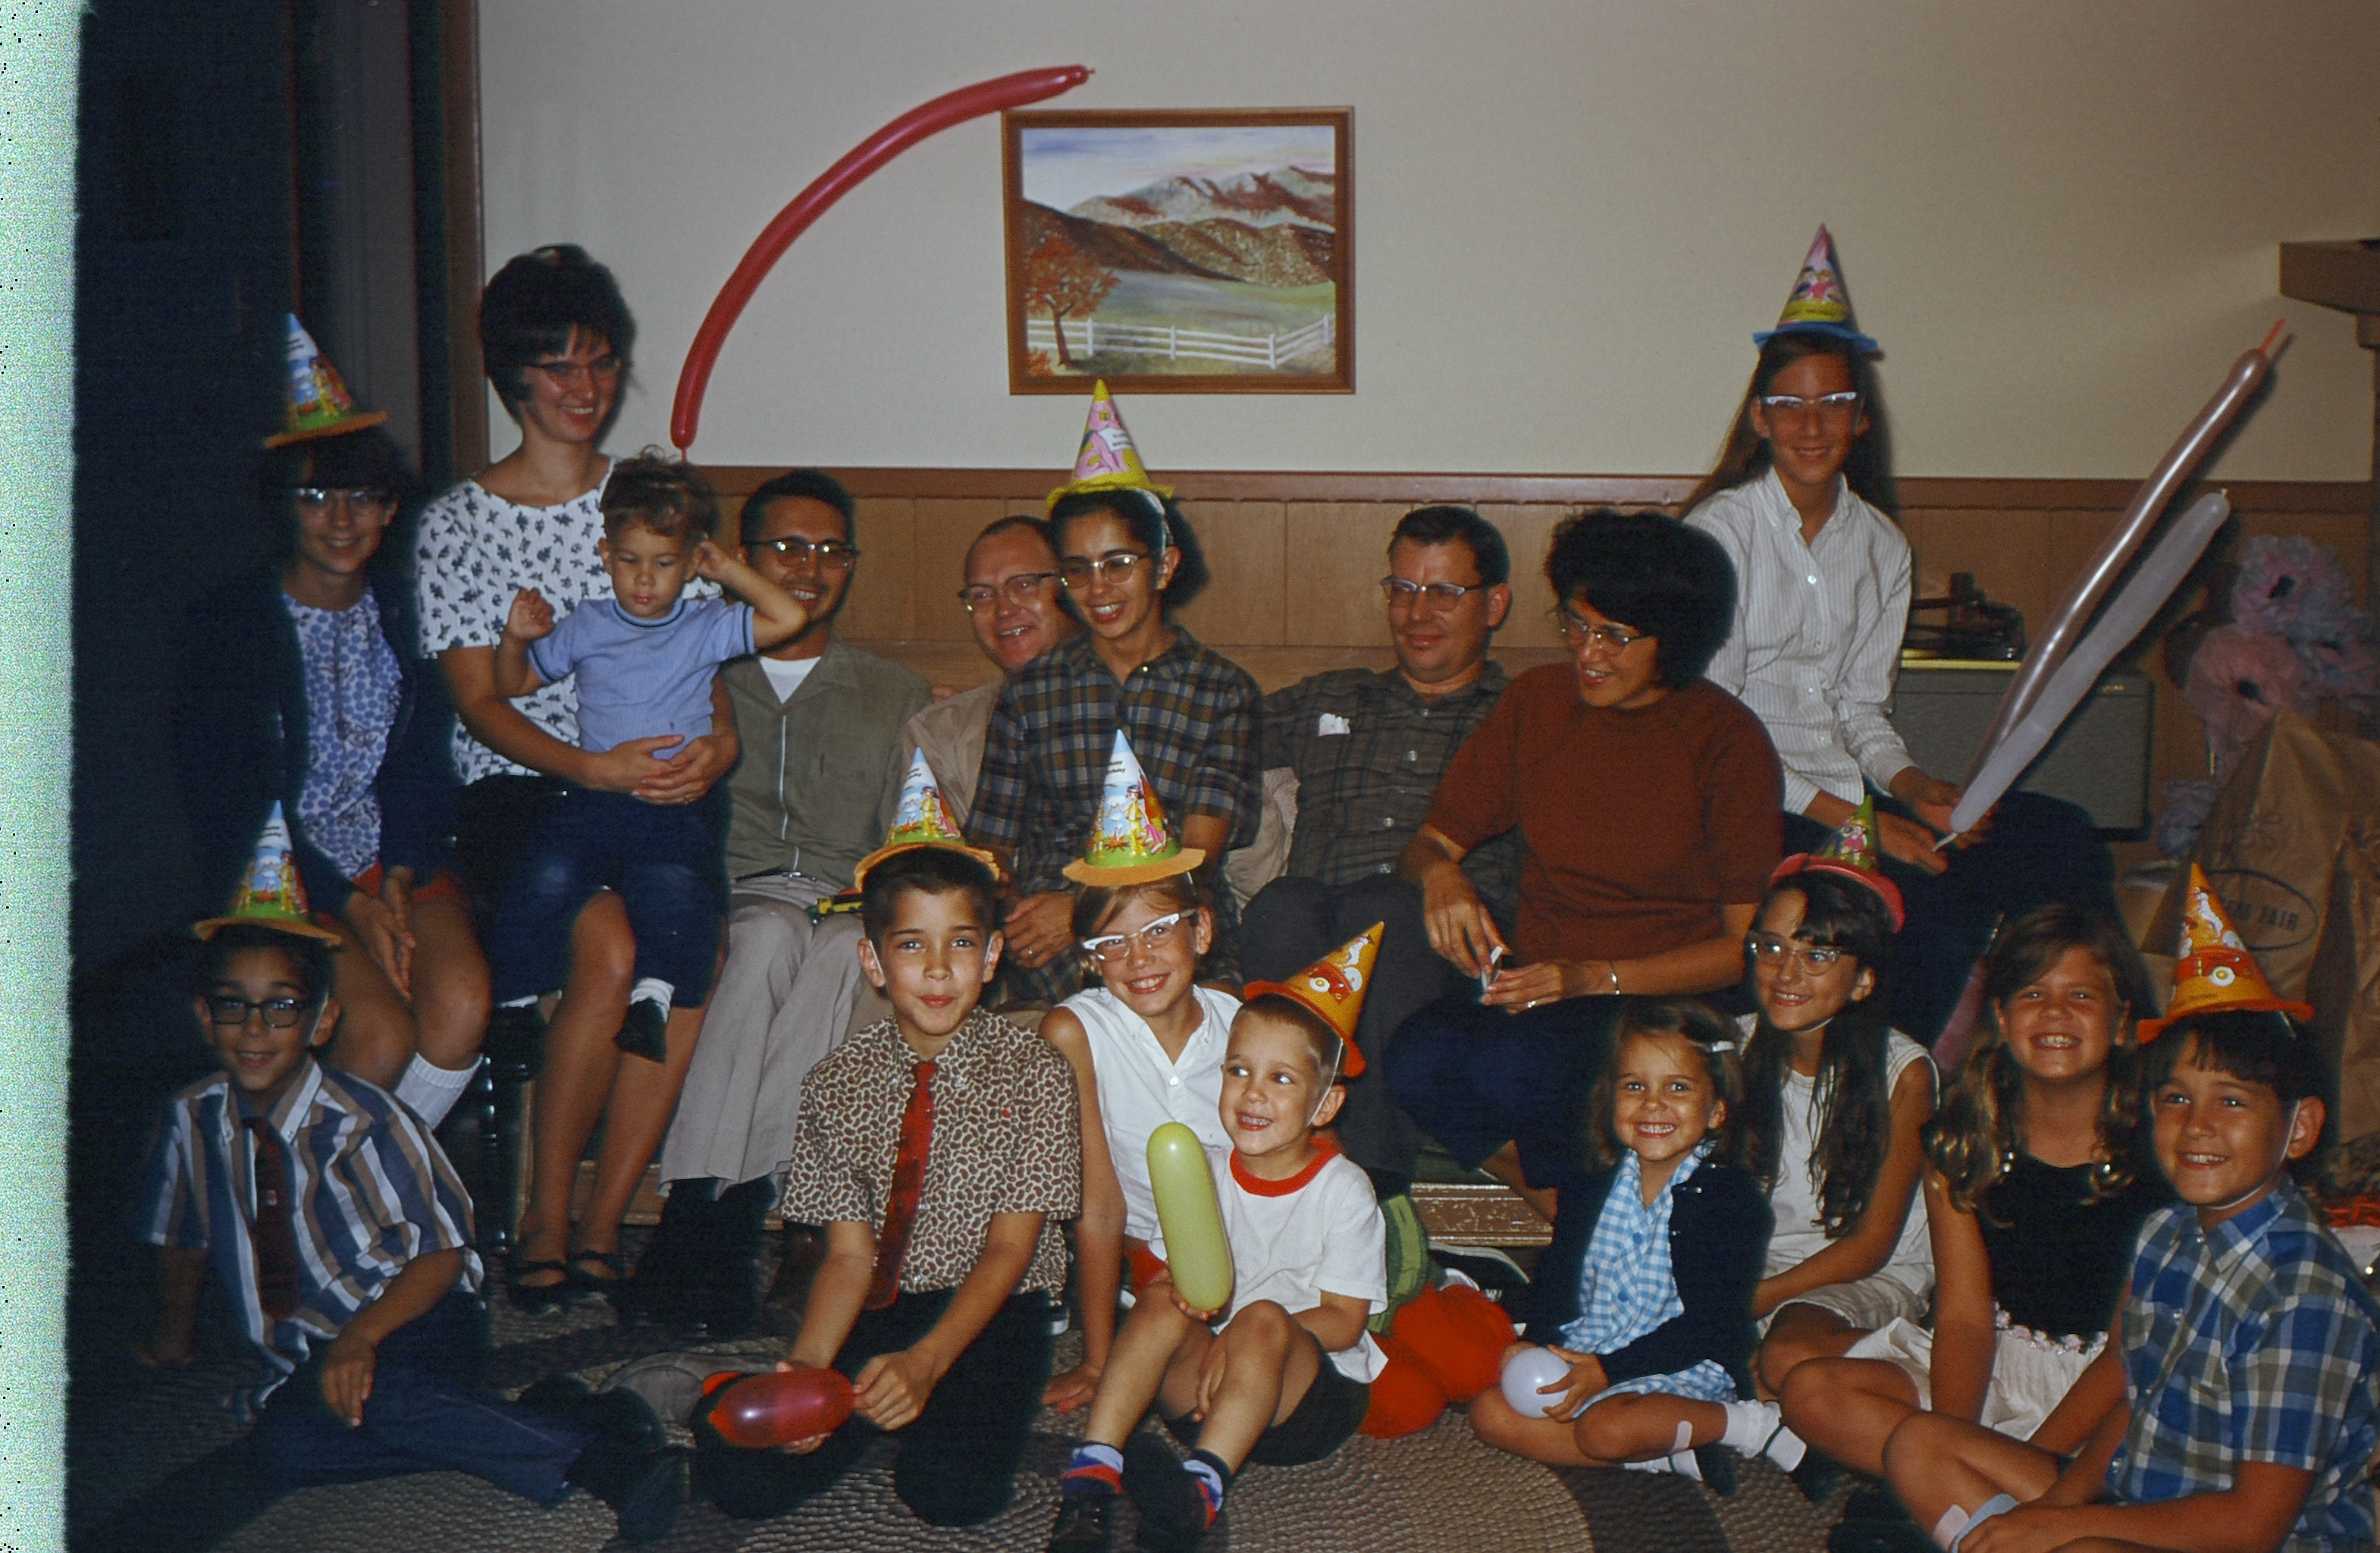 Birthday celebration in the 1960s